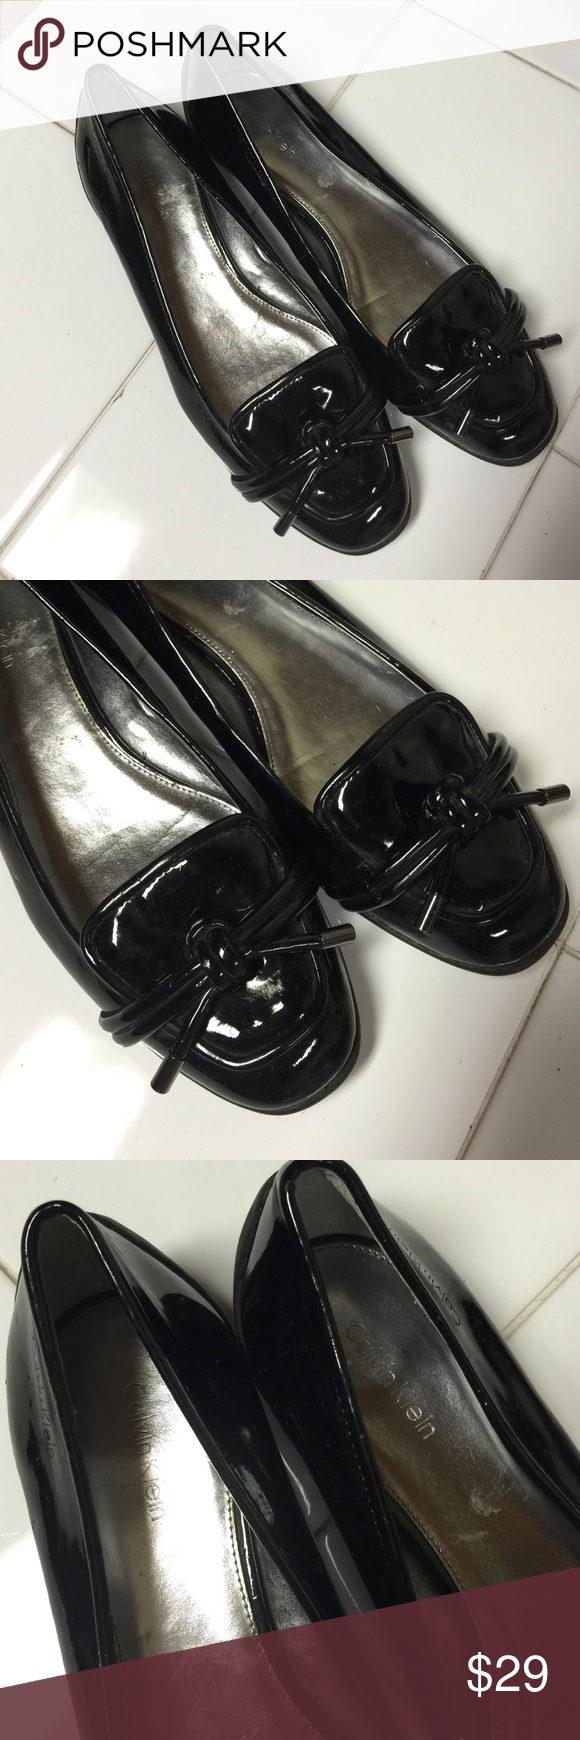 CALVIN KLEIN FLATS BLACK PATENT LEATHER CALVIN KLEIN FLATS SIZE 9. THEY HAVE LONG LIFE LEFT, THEY ARE VERY COMFY AND CHICK Calvin Klein Shoes Flats & Loafers